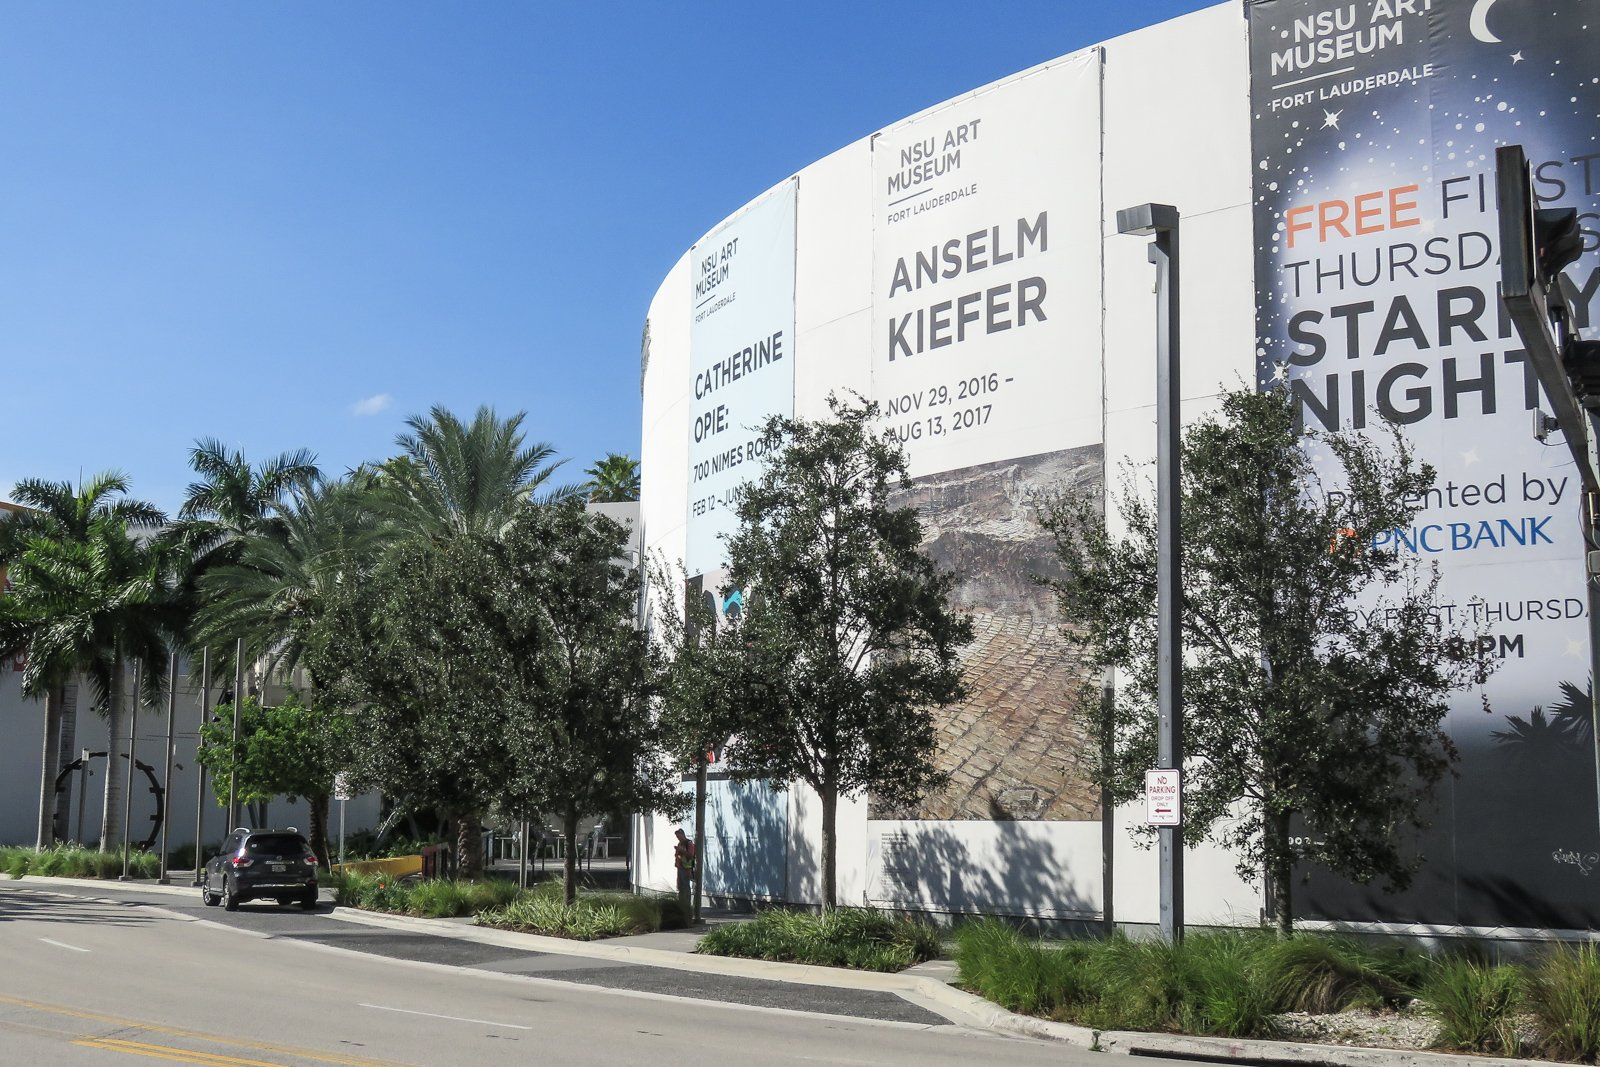 Top things to do in Fort Lauderdale at the NSU Art Gallery. Take an art Fort Lauderdale tour.